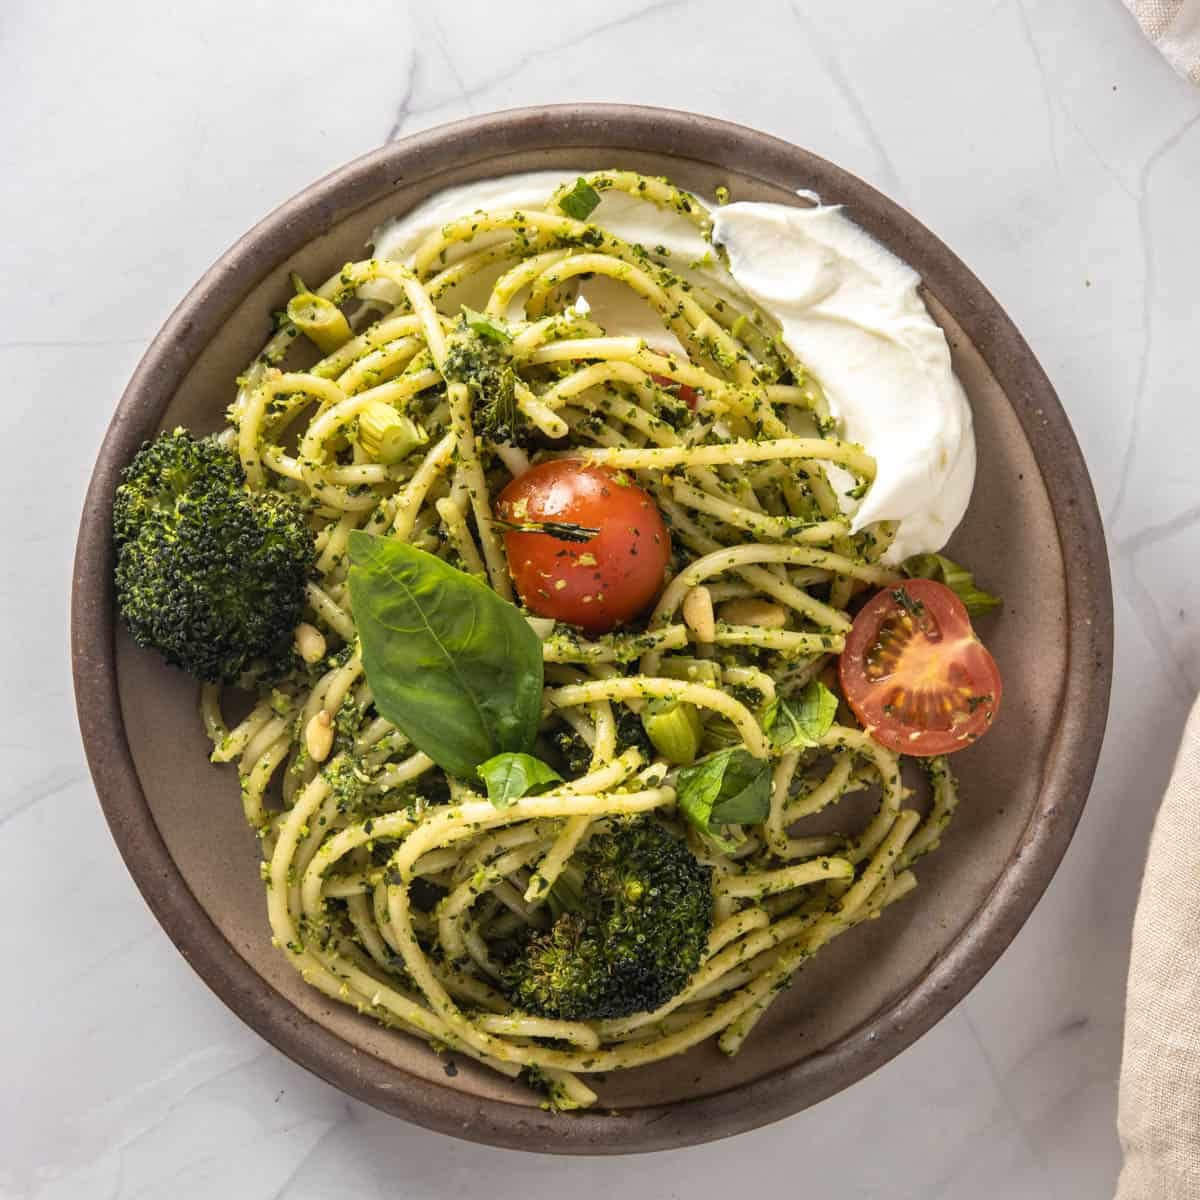 Broccoli pesto pasta with cherry tomatoes and whipped ricotta